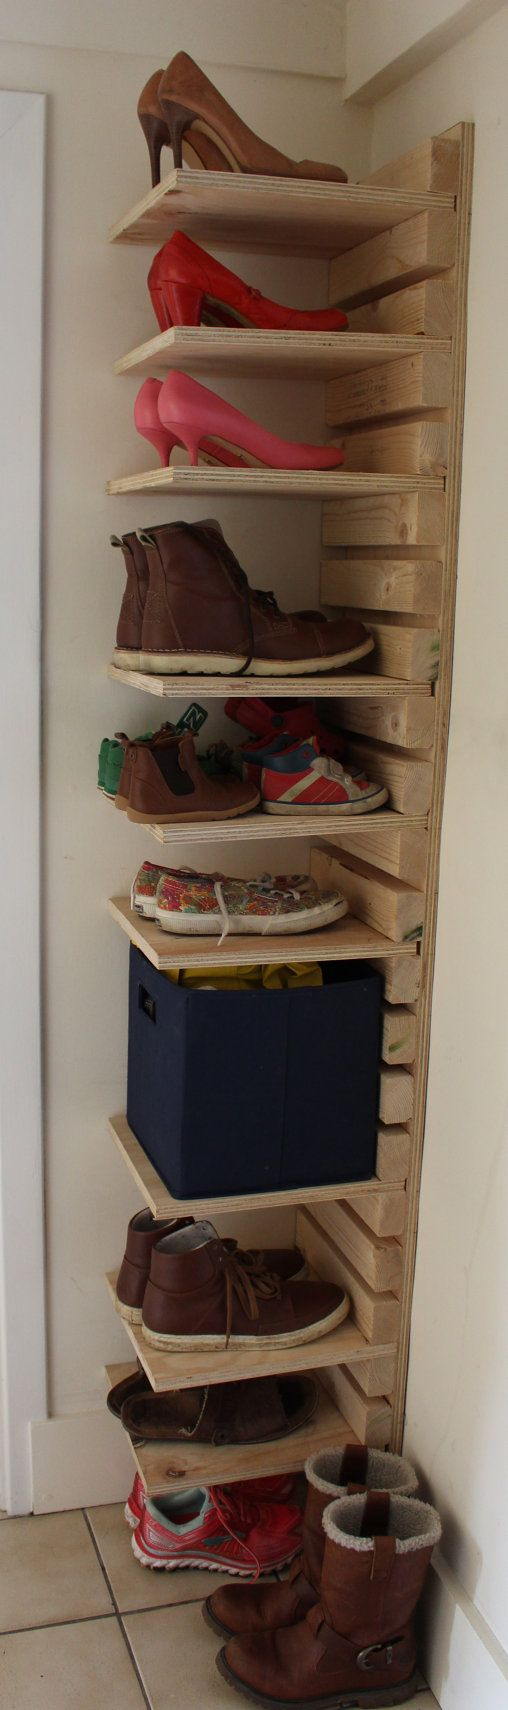 So smart..Adjustable wooden shoe rack Made to order 10 Shelf and 22 slat adjustable shoe rack made from heavy duty 18mm plywood and spruce. Height 180cm / width 30cm / shelf depth 30cm / total depth 36cm Shoe rack delivered with a plain wood finish and not pre drilled unless requested. Other sizes available on request.